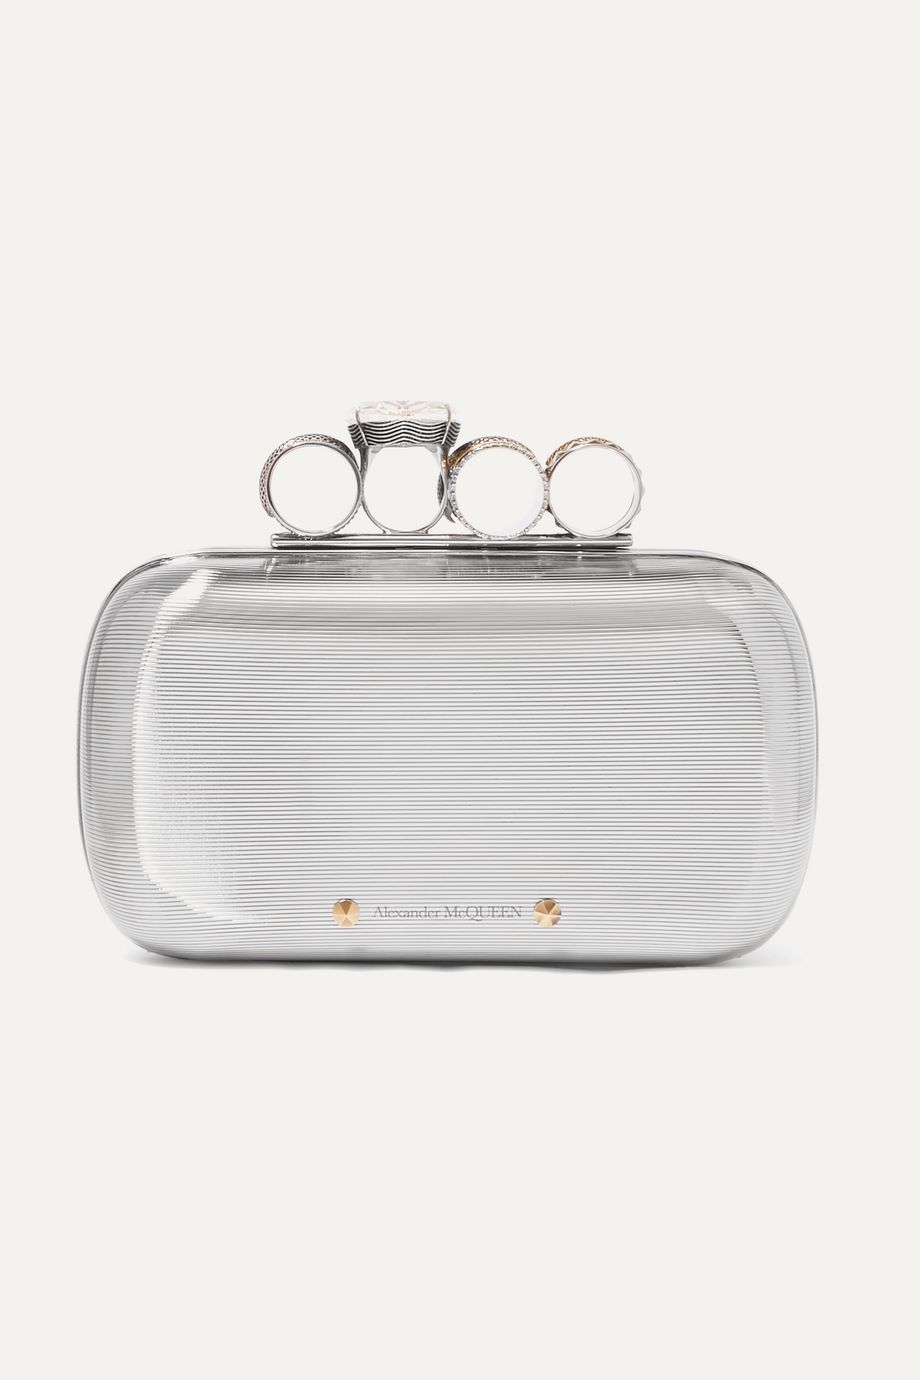 Alexander McQueen Four Ring crystal-embellished silver-tone clutch